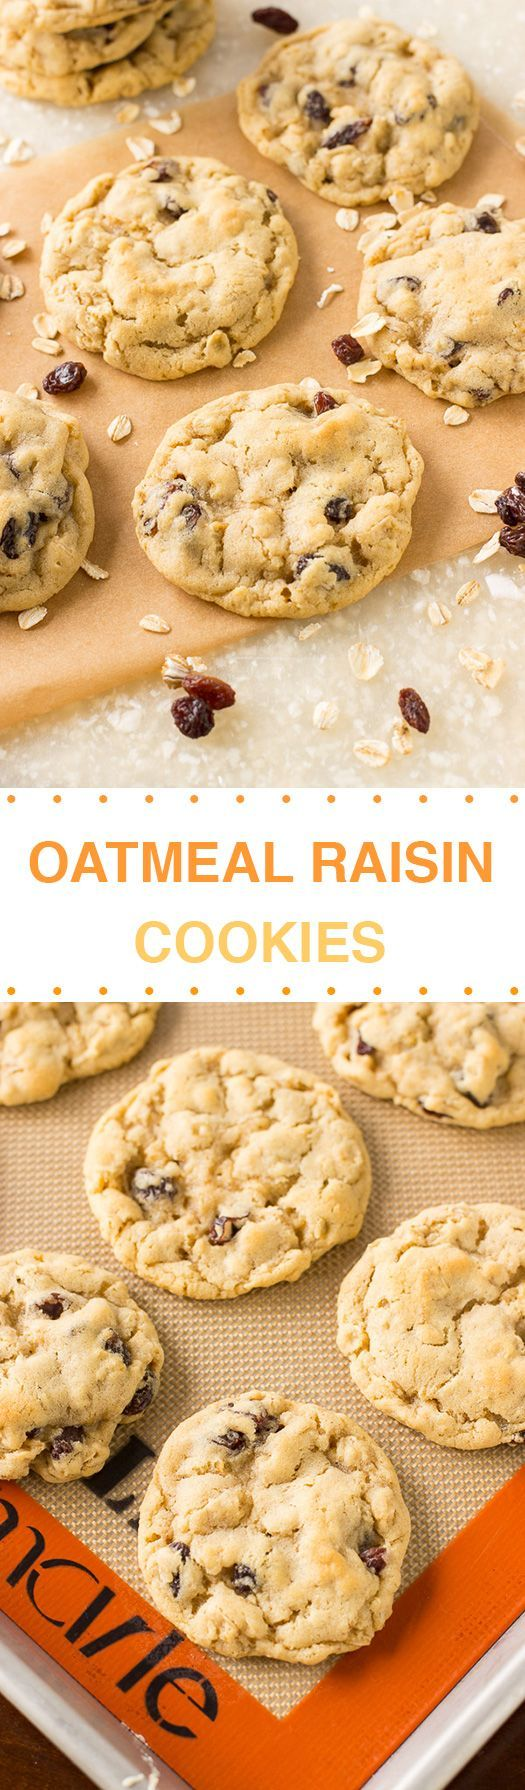 Bacon, Oatmeal, And Raisin Cookies Recipe — Dishmaps